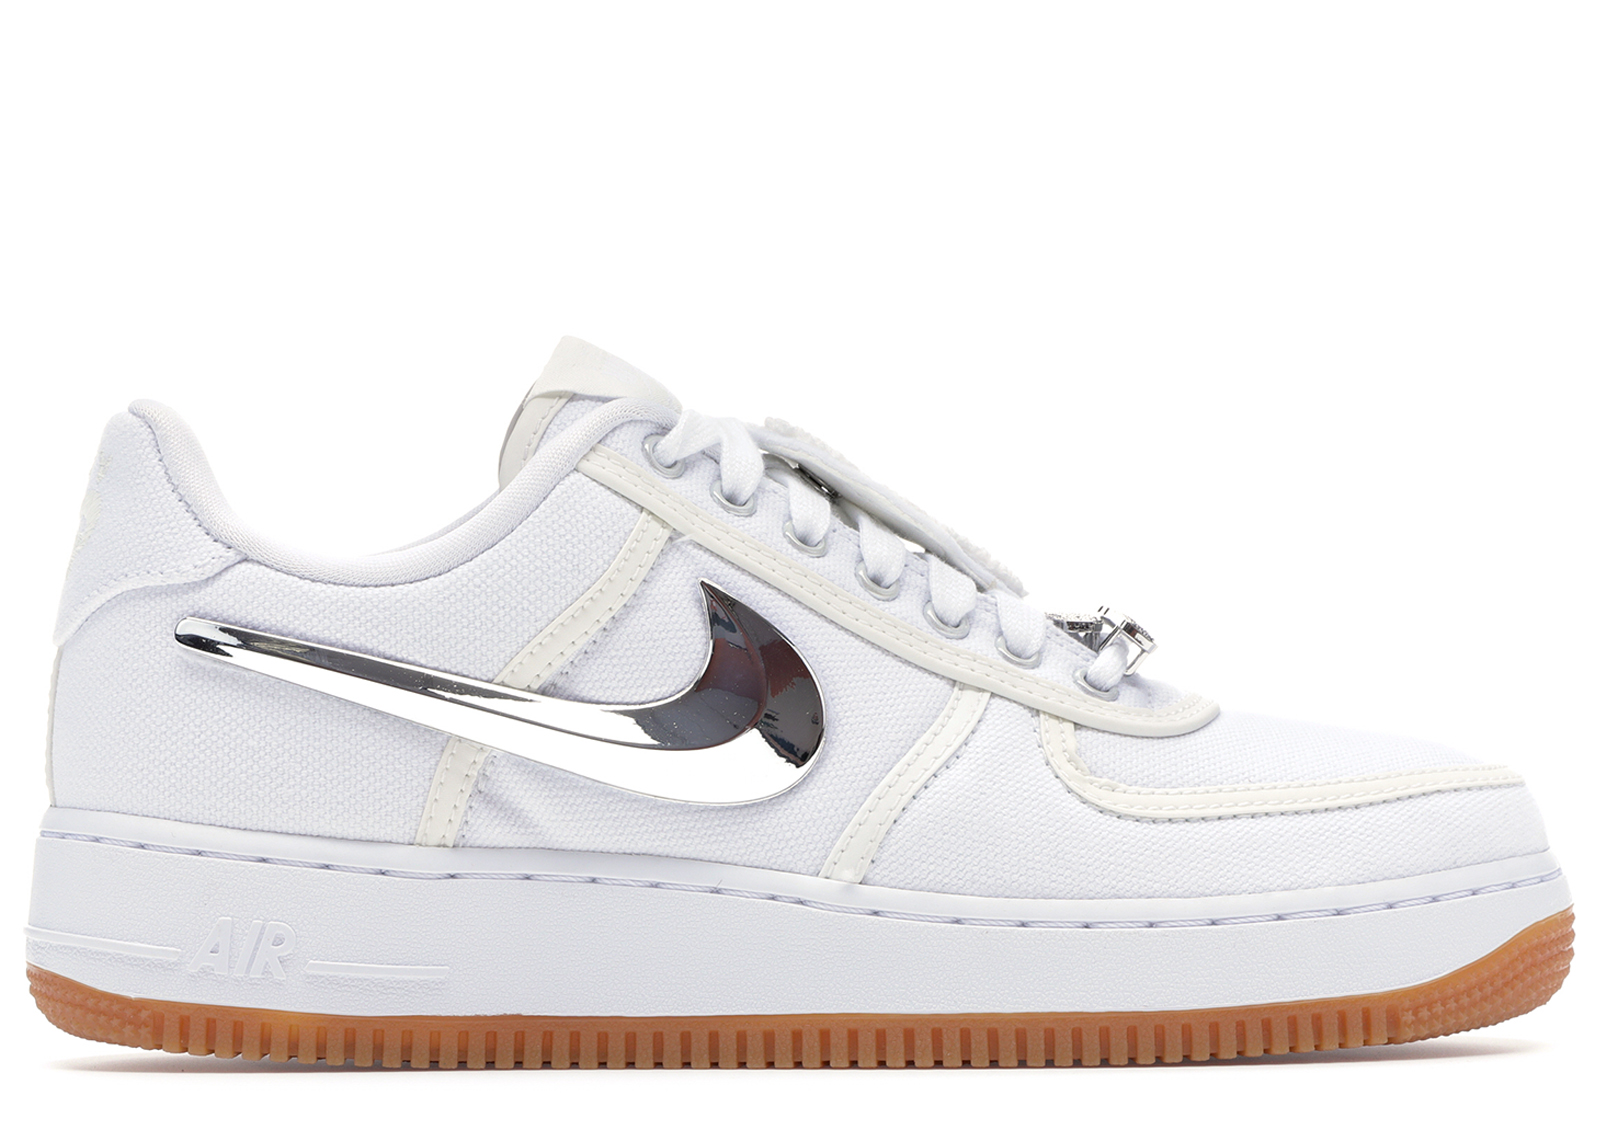 nike air force 1 low travis scot